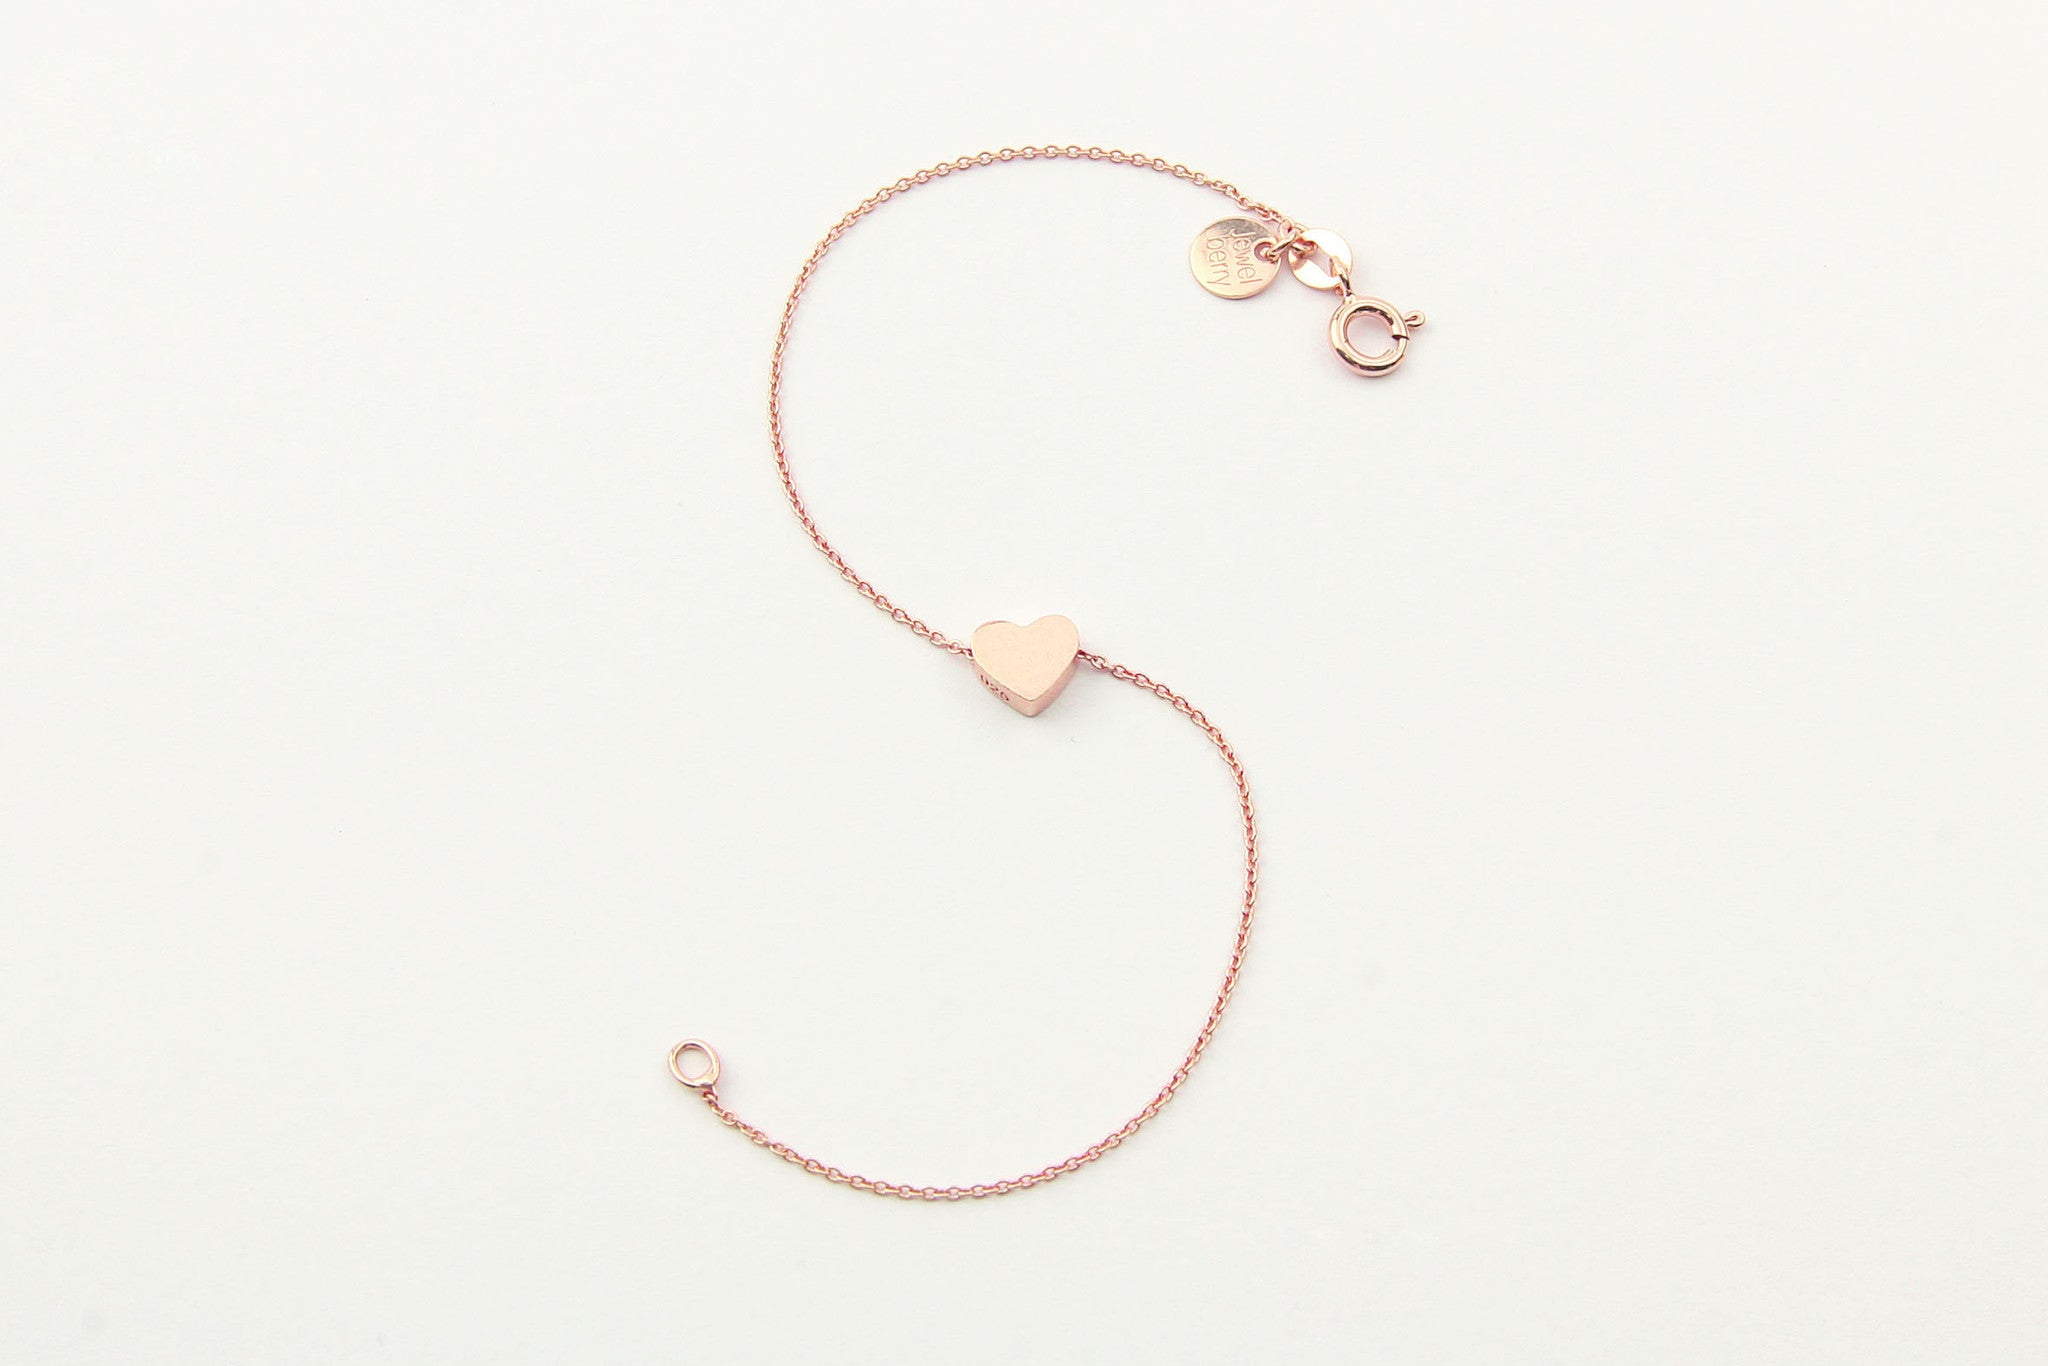 jewelberry armband bracelet little heart rose gold plated sterling silver fine jewelry handmade with love fairtrade anchor chain